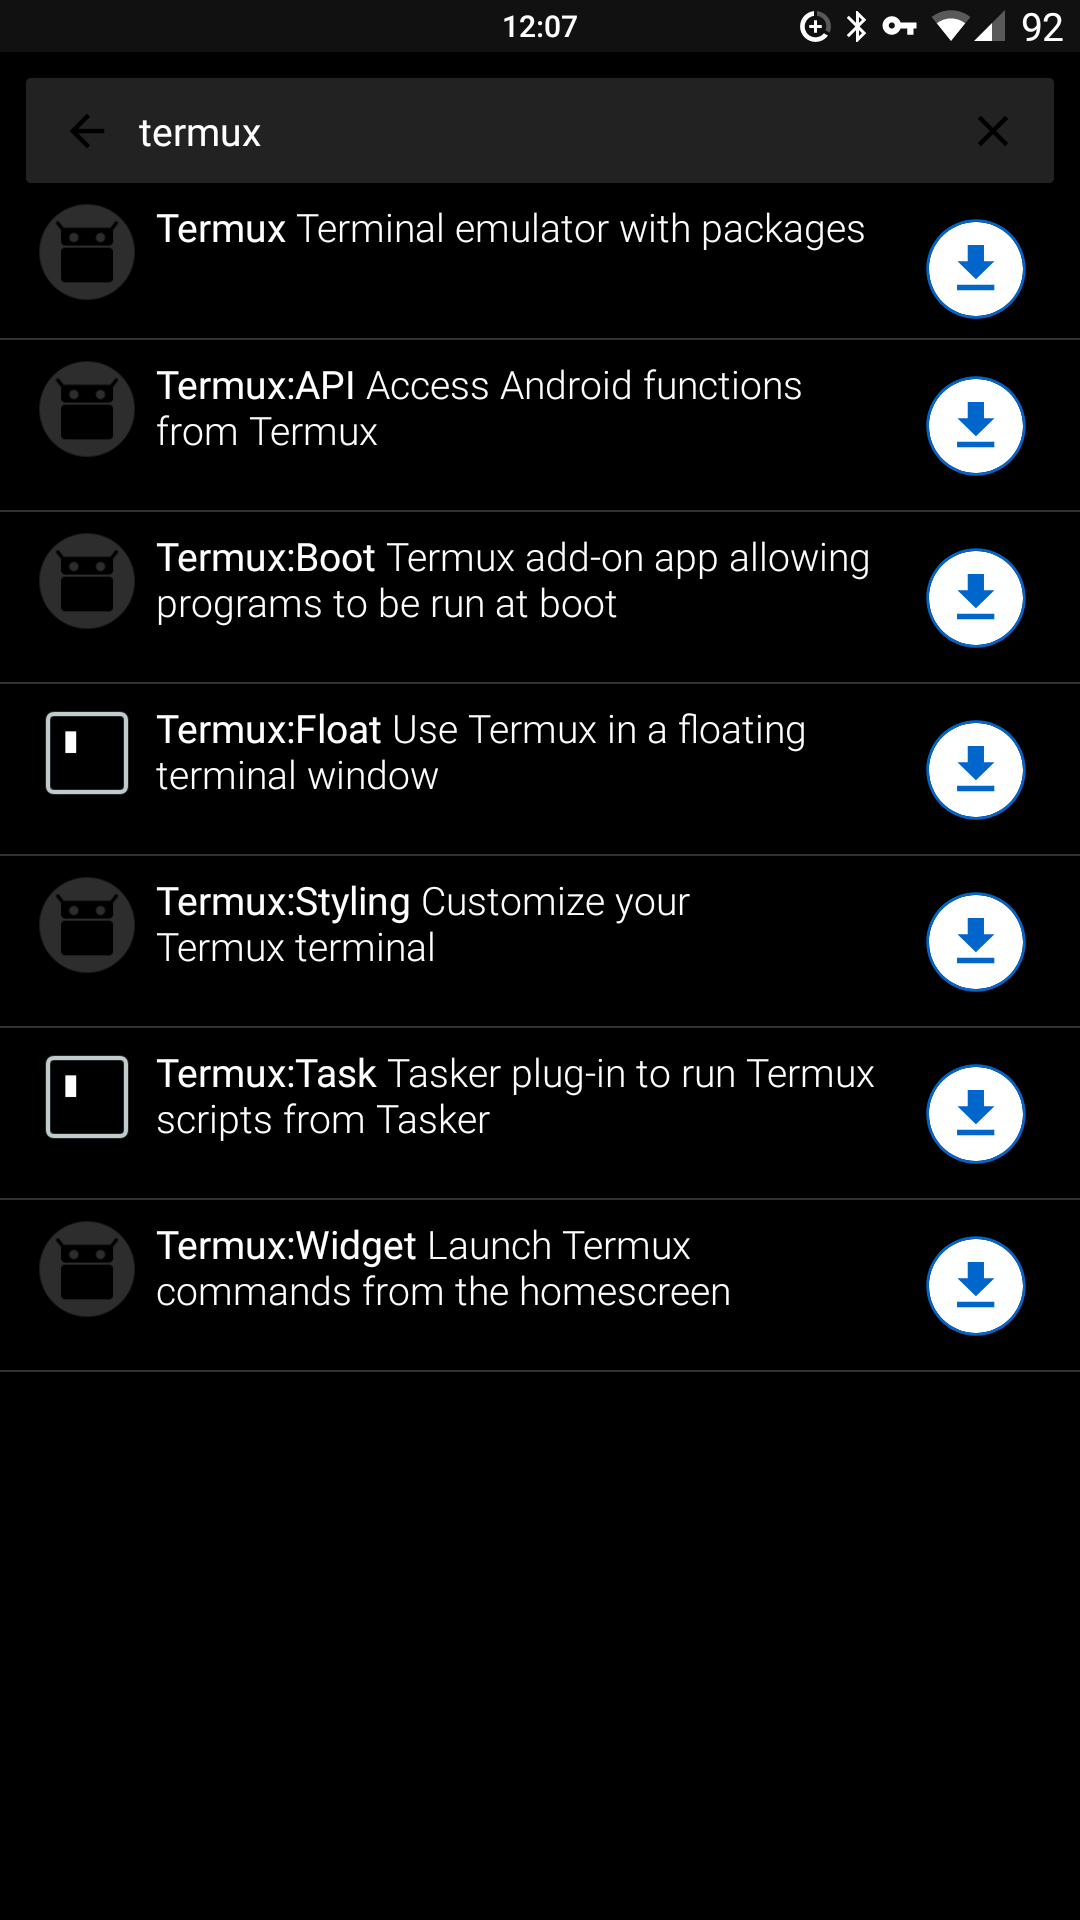 Mobile development suite: How to use Termux + my setup